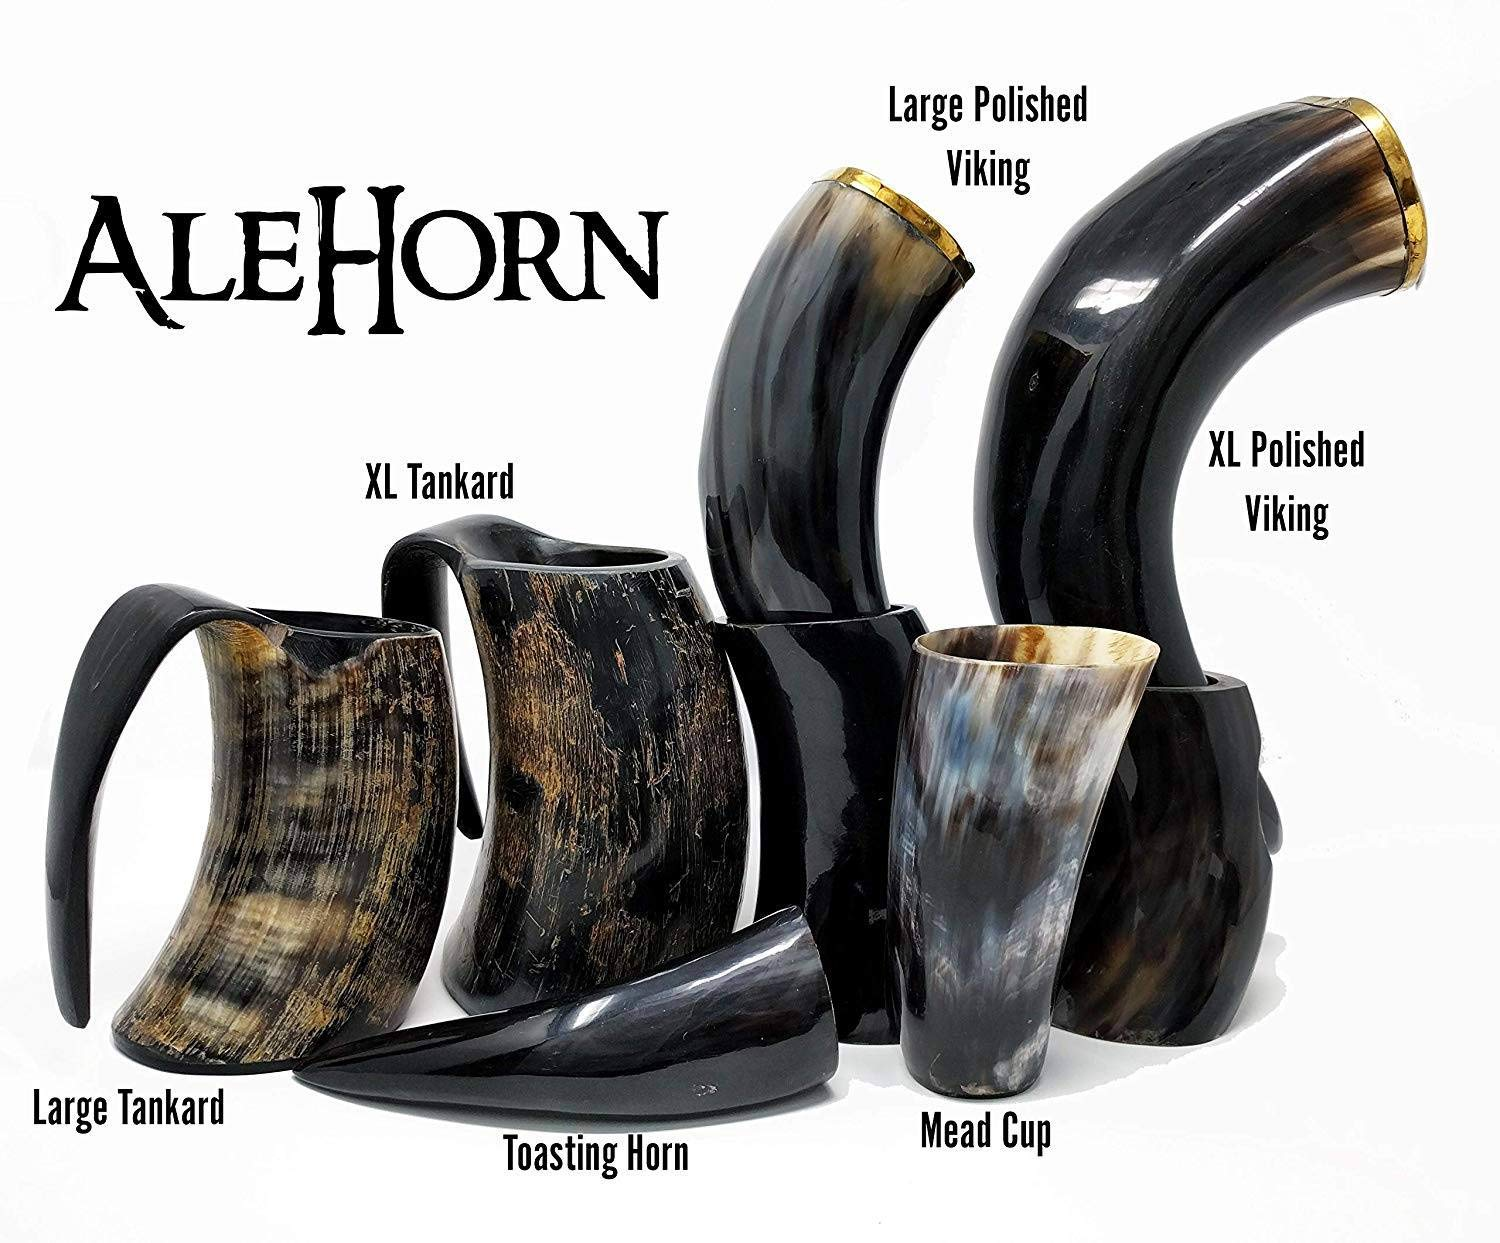 AleHorn – The Original Handcrafted Authentic Viking Drinking Horn for Beer, Mead, Ale – Medieval Inspired – Food Safe Vessel - Curved Style with Stand (12'' 4PK, Polished Horn)